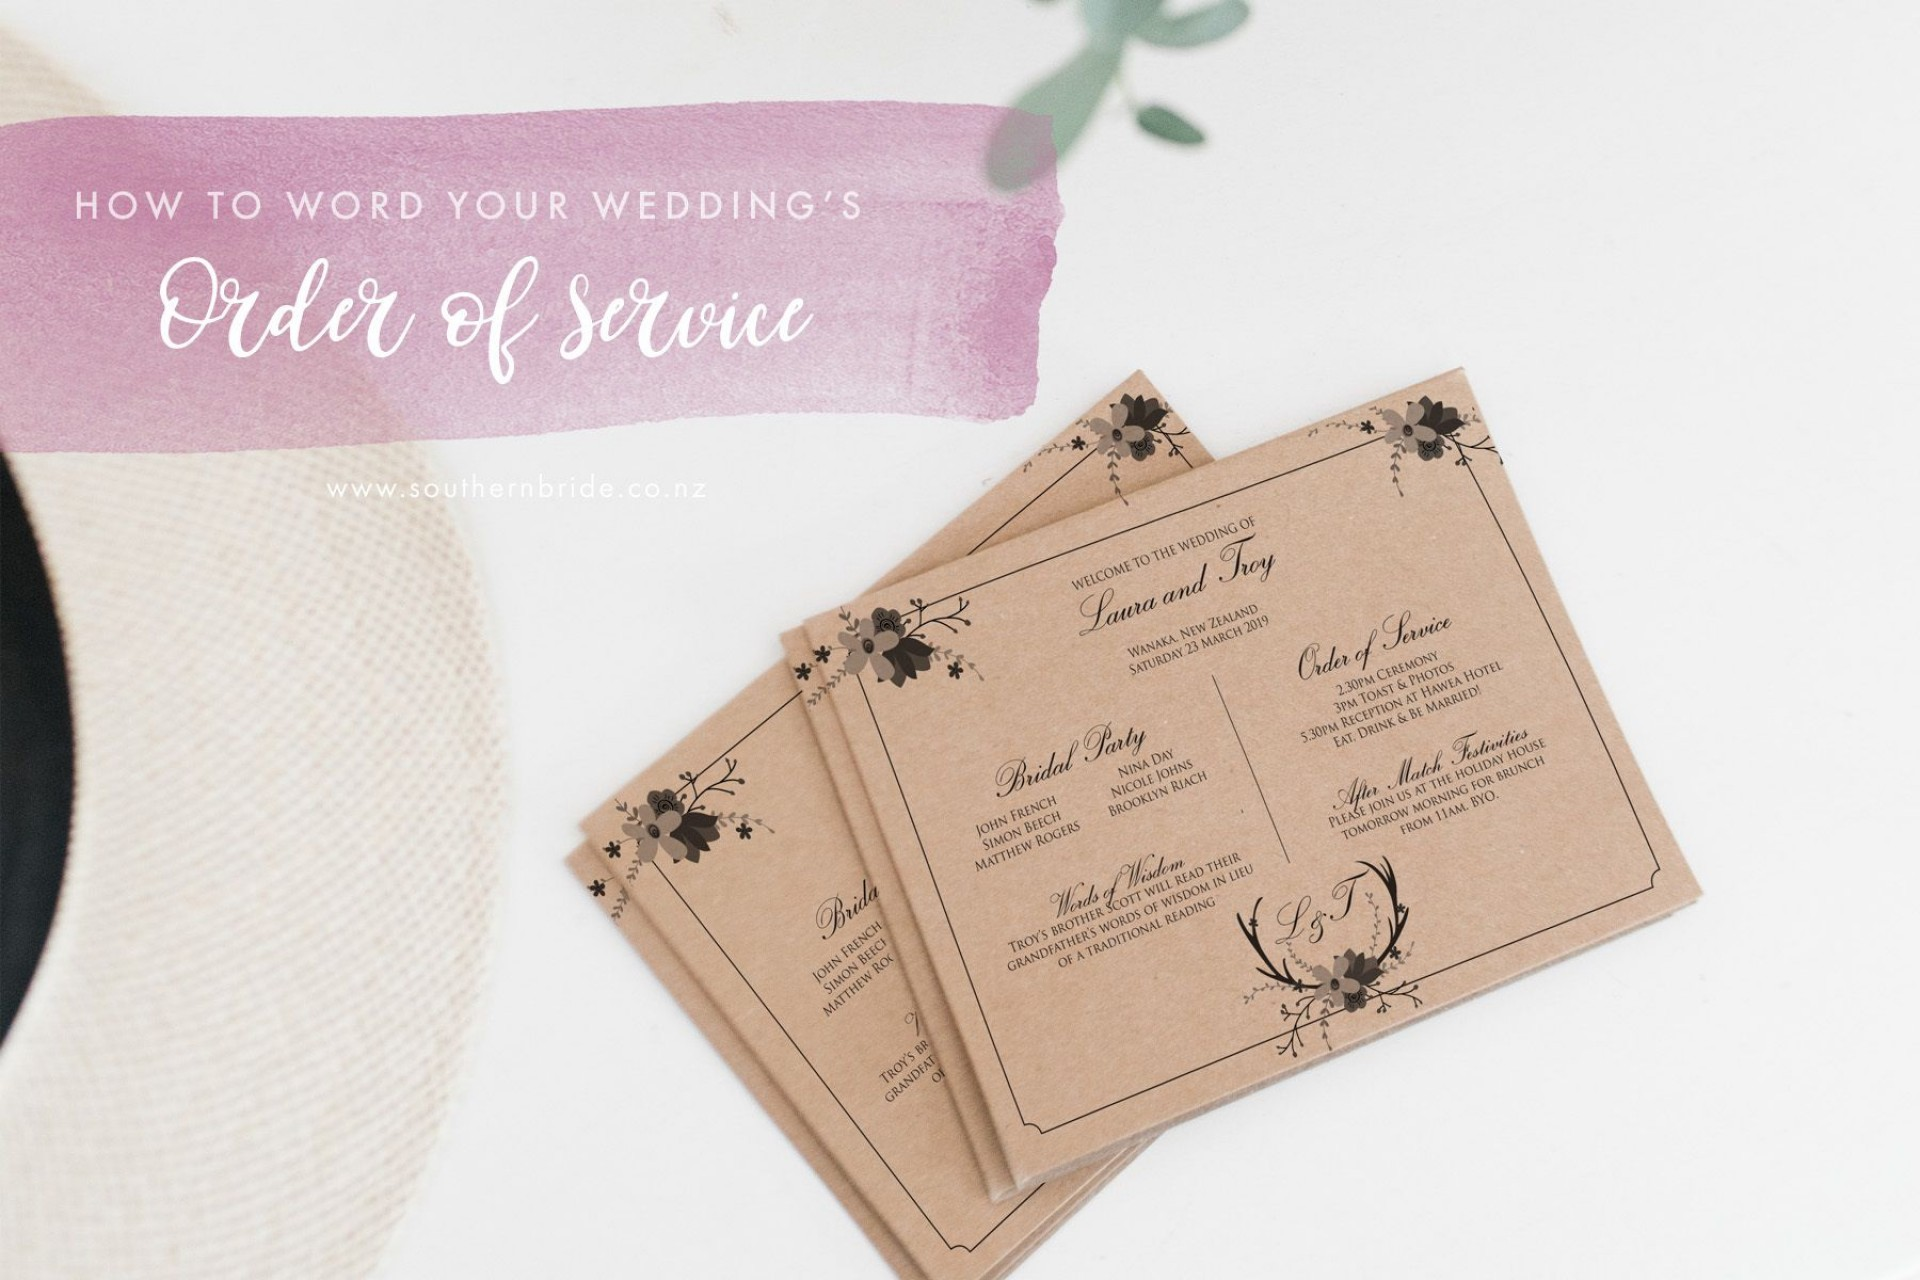 008 Impressive Wedding Order Of Service Template Free Highest Clarity  Front Cover Download Church1920